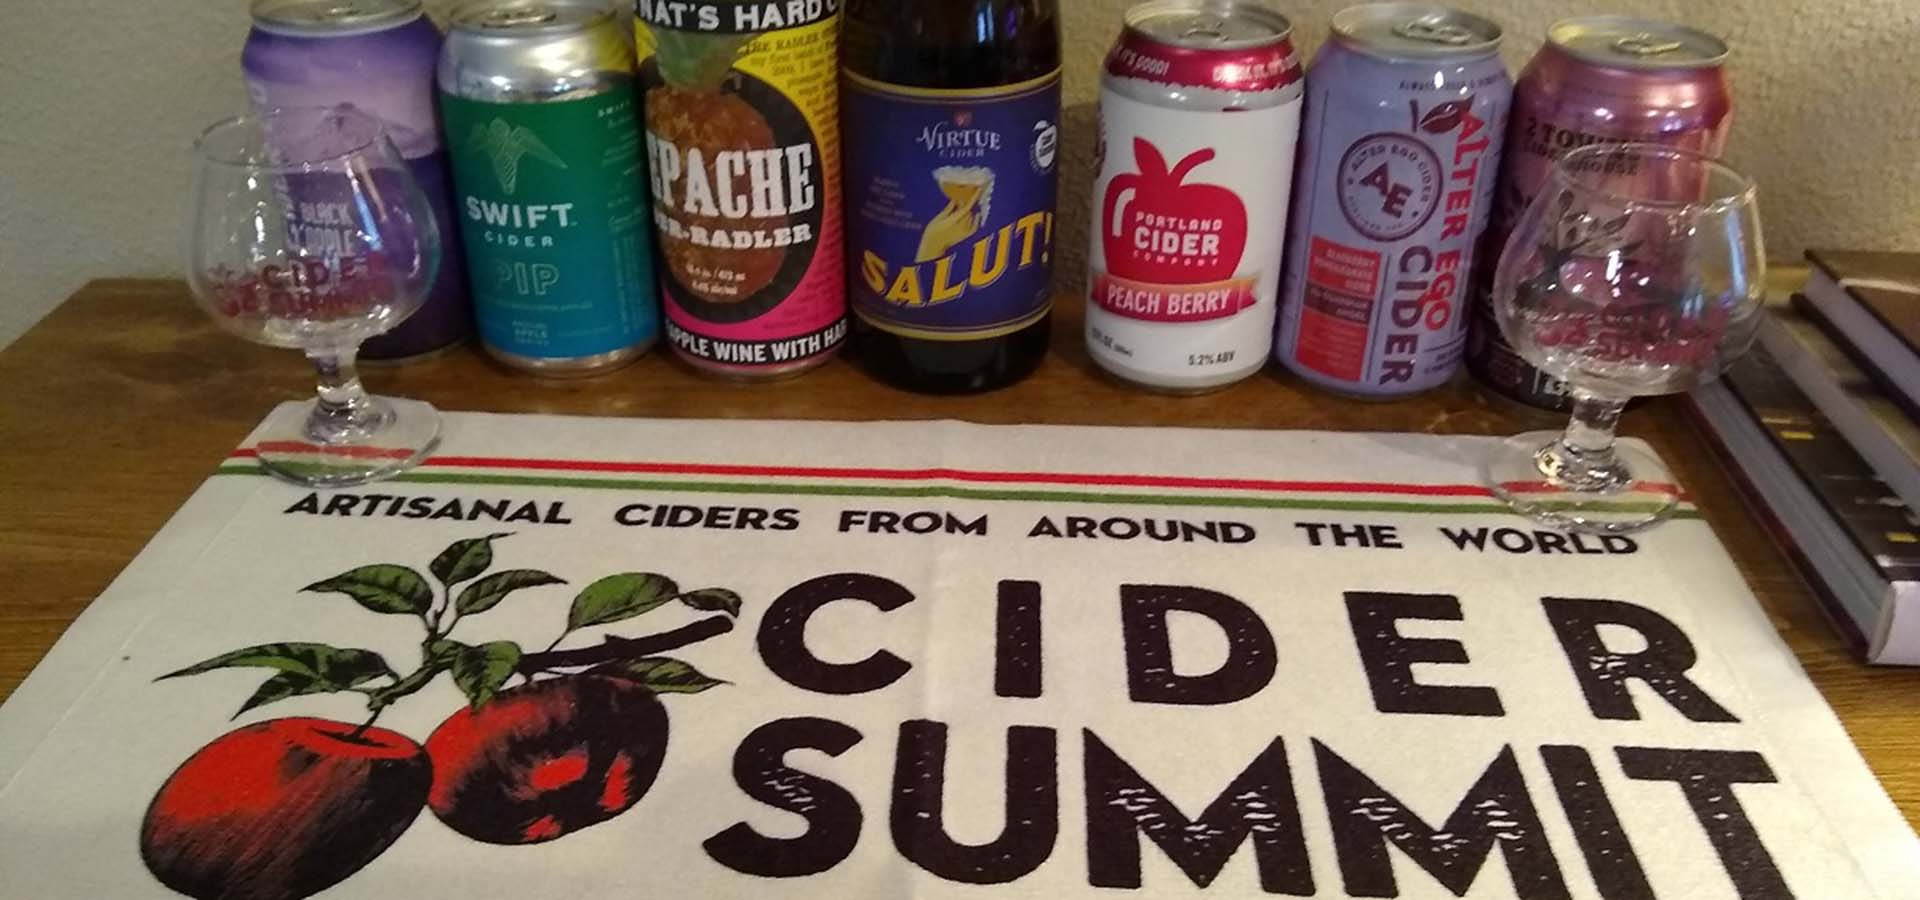 Seattle Cider Summit tasting kit offering; includes a bar towel with logo, 2 tasting glasses, and various ciders.